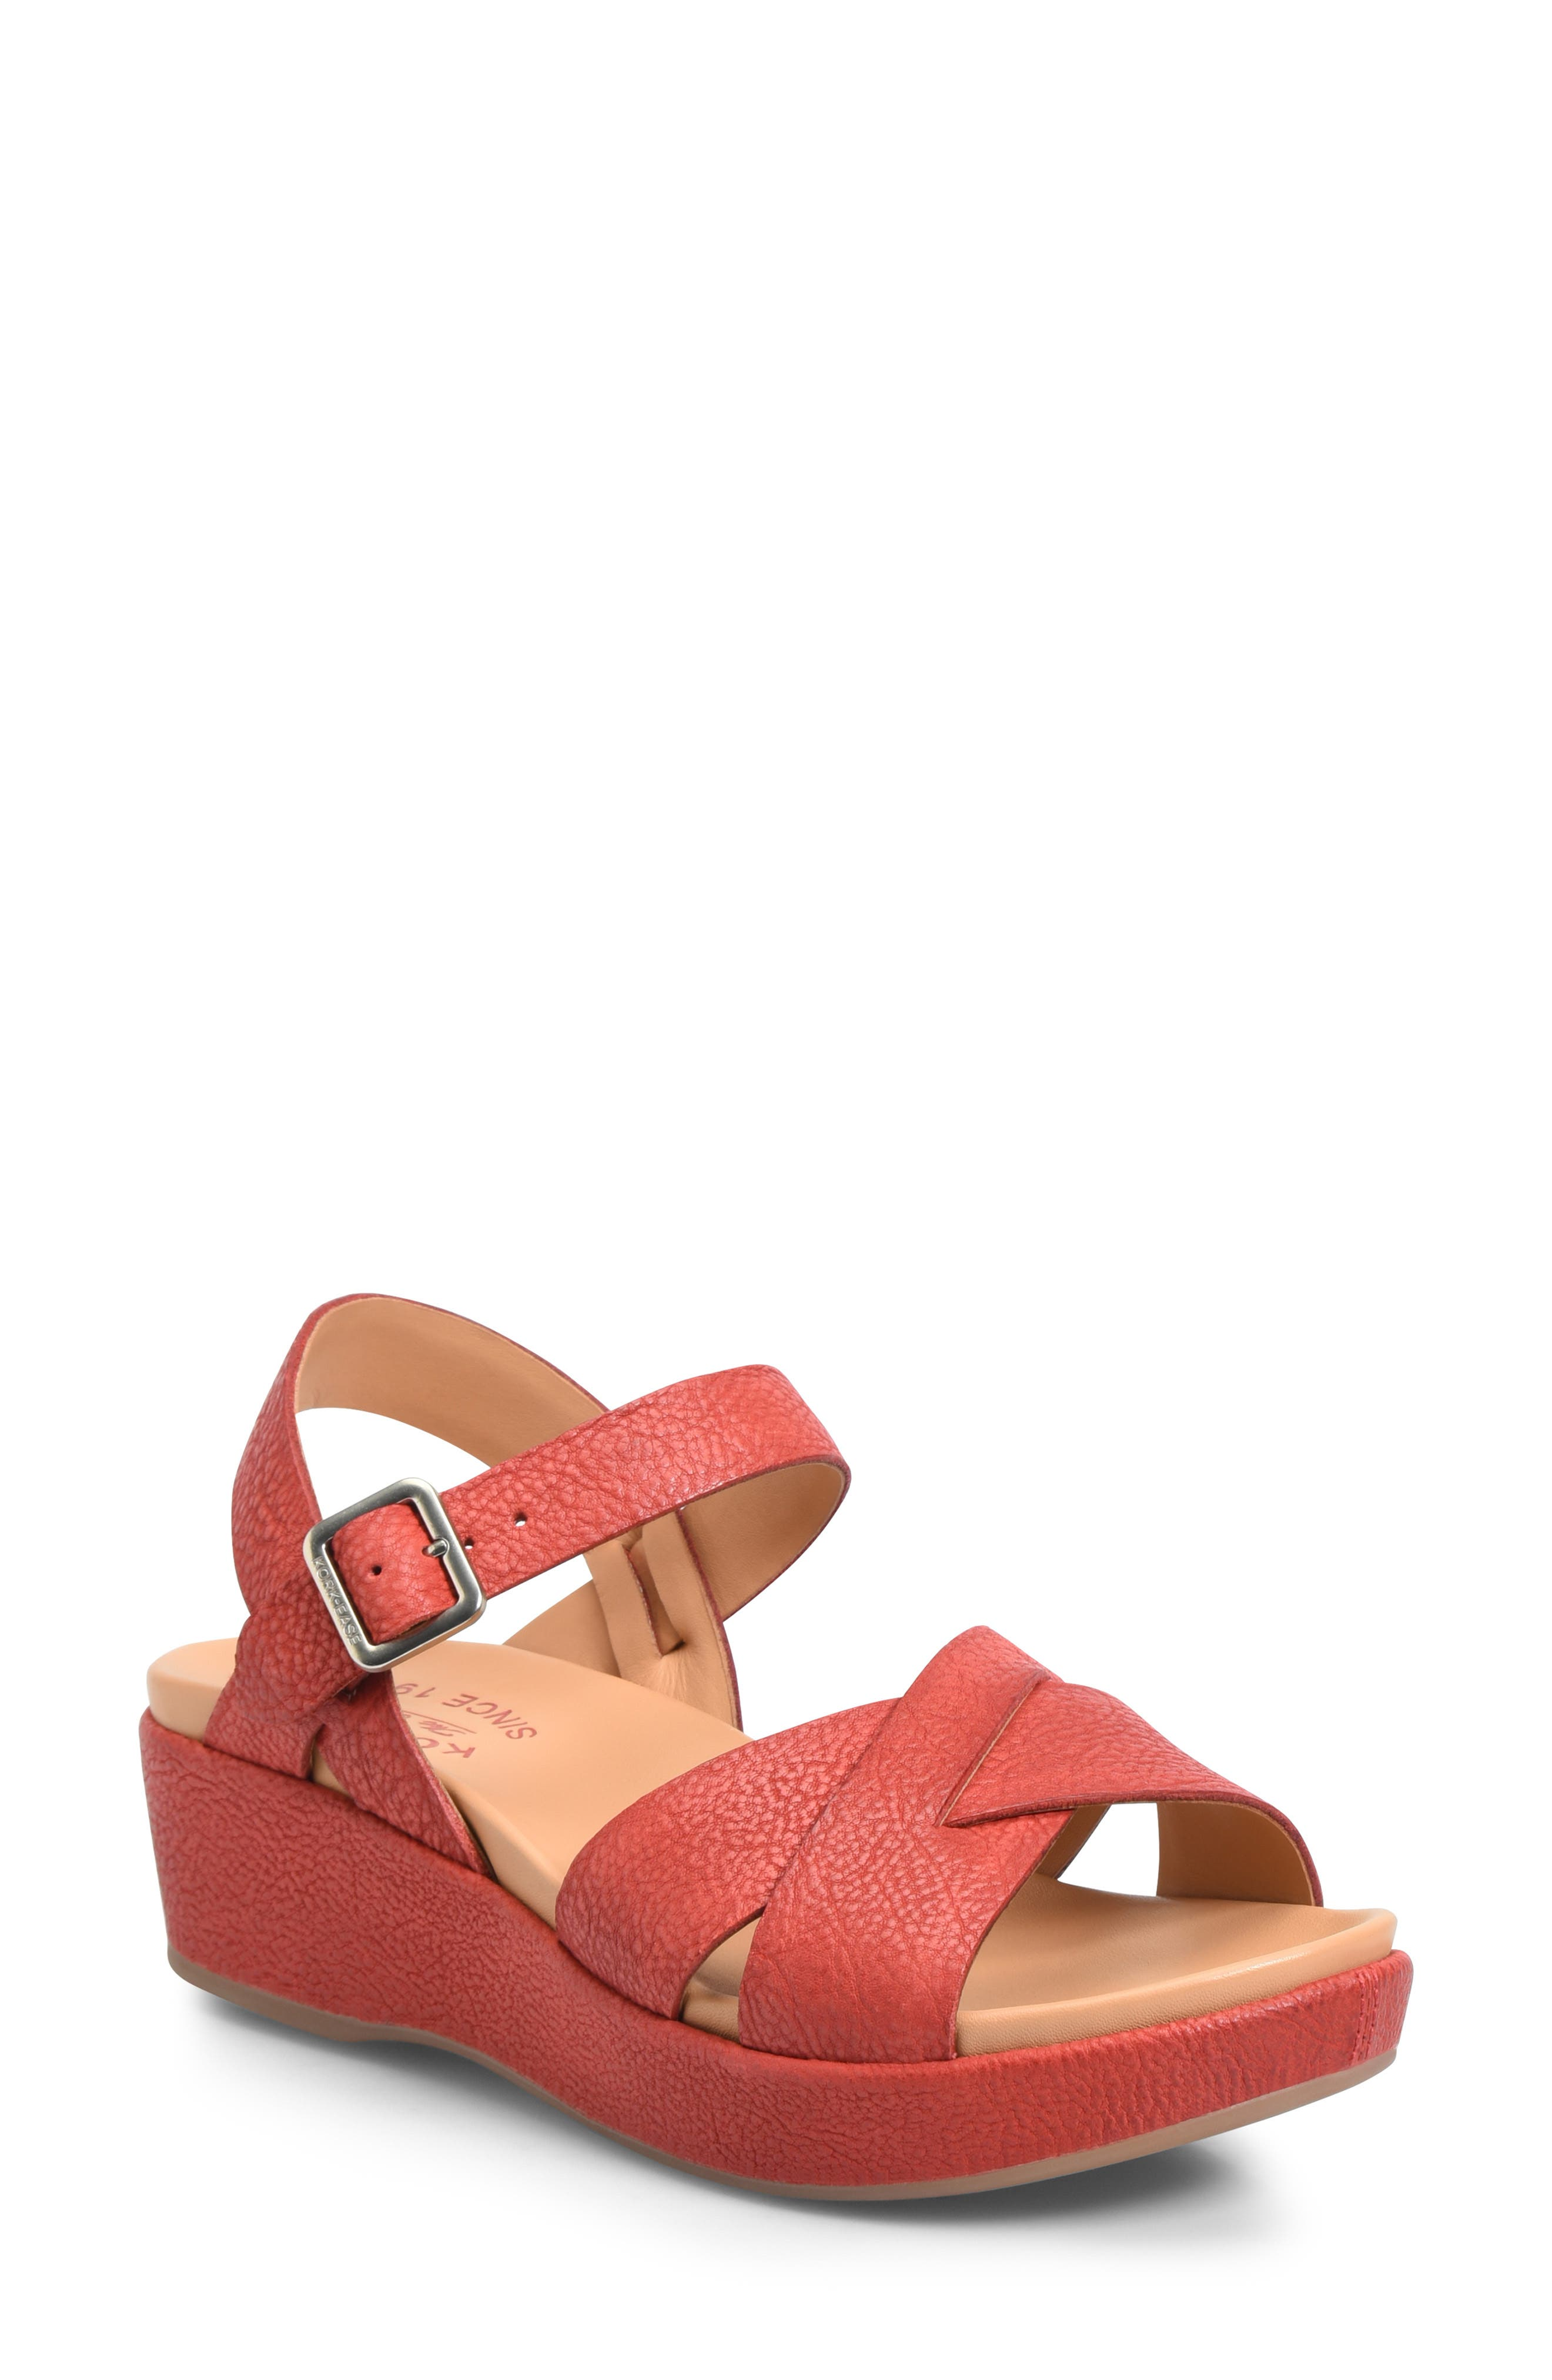 53bc266932f New 1940s Shoes  Wedge